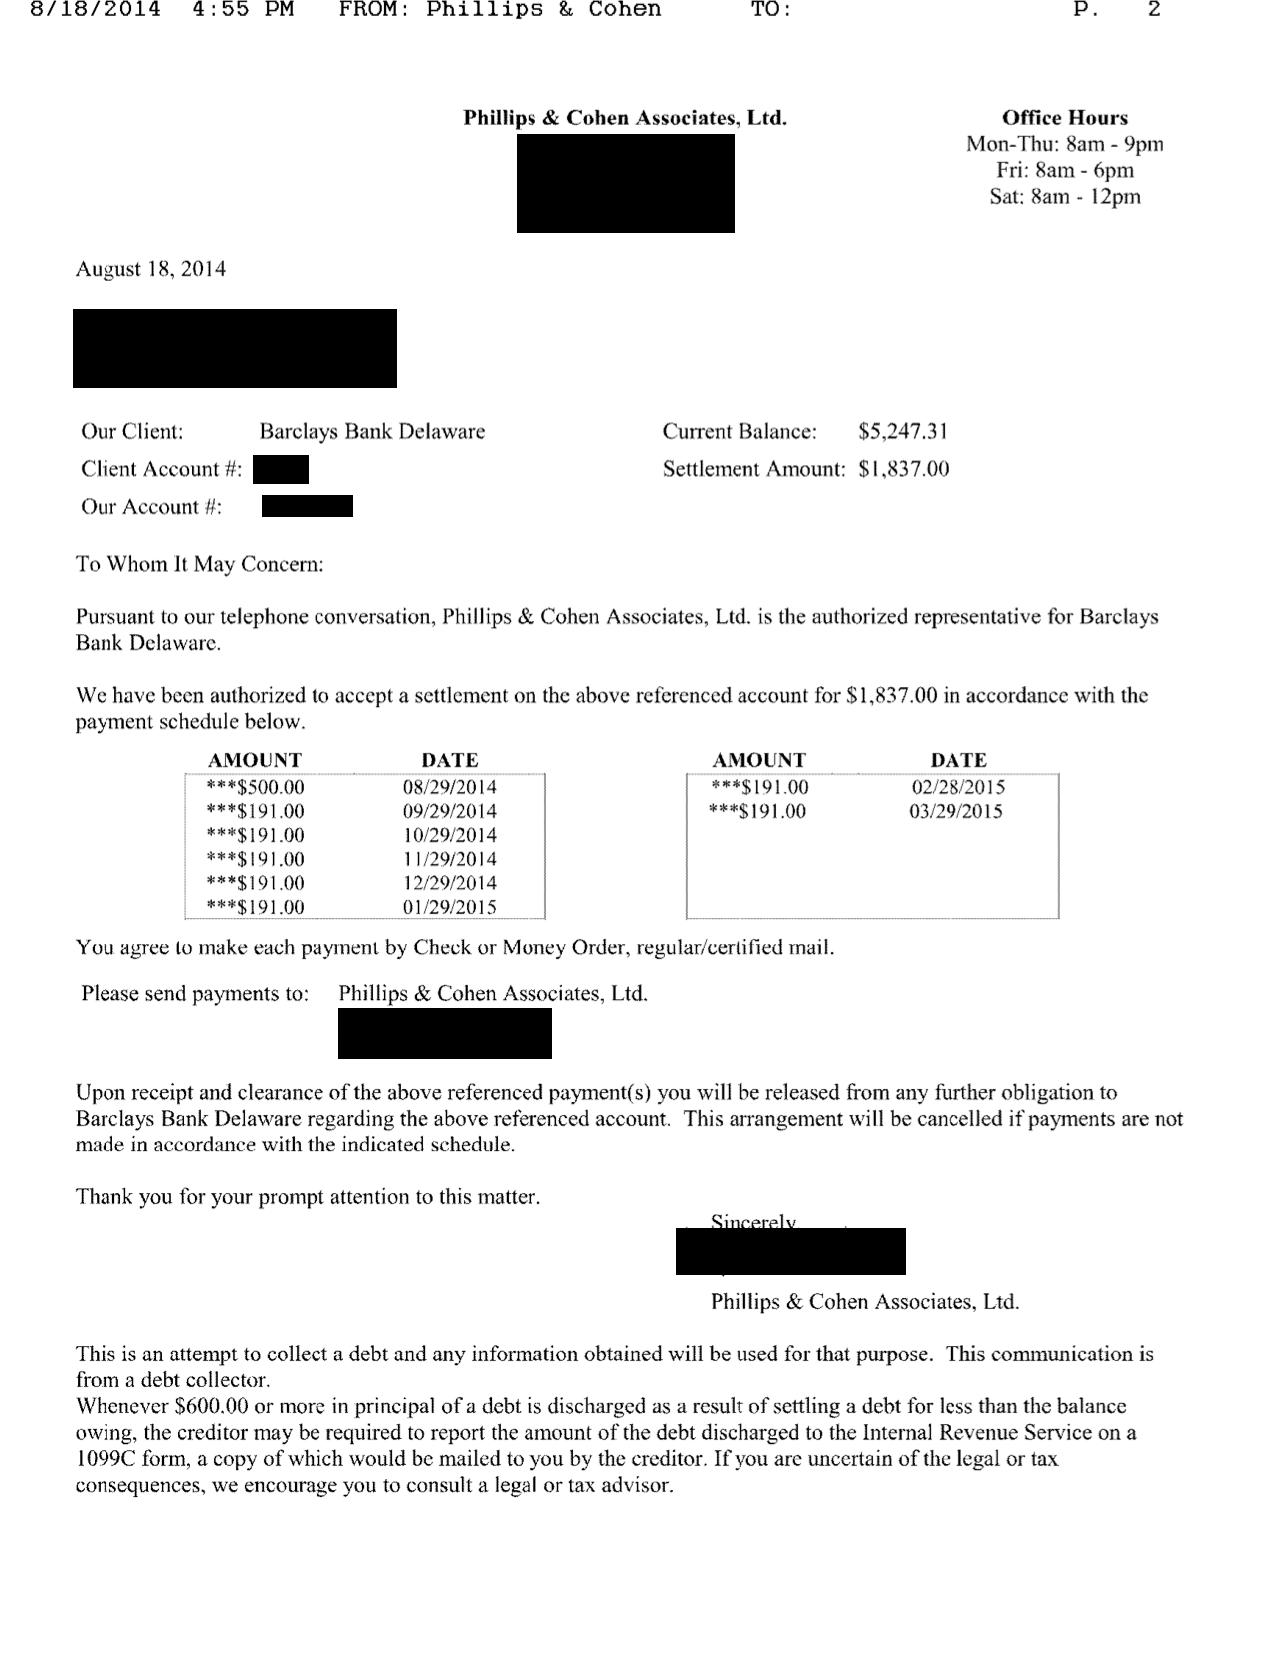 Image of a settlement letter with Barclays Bank Delaware with savings of 3,410 dollars